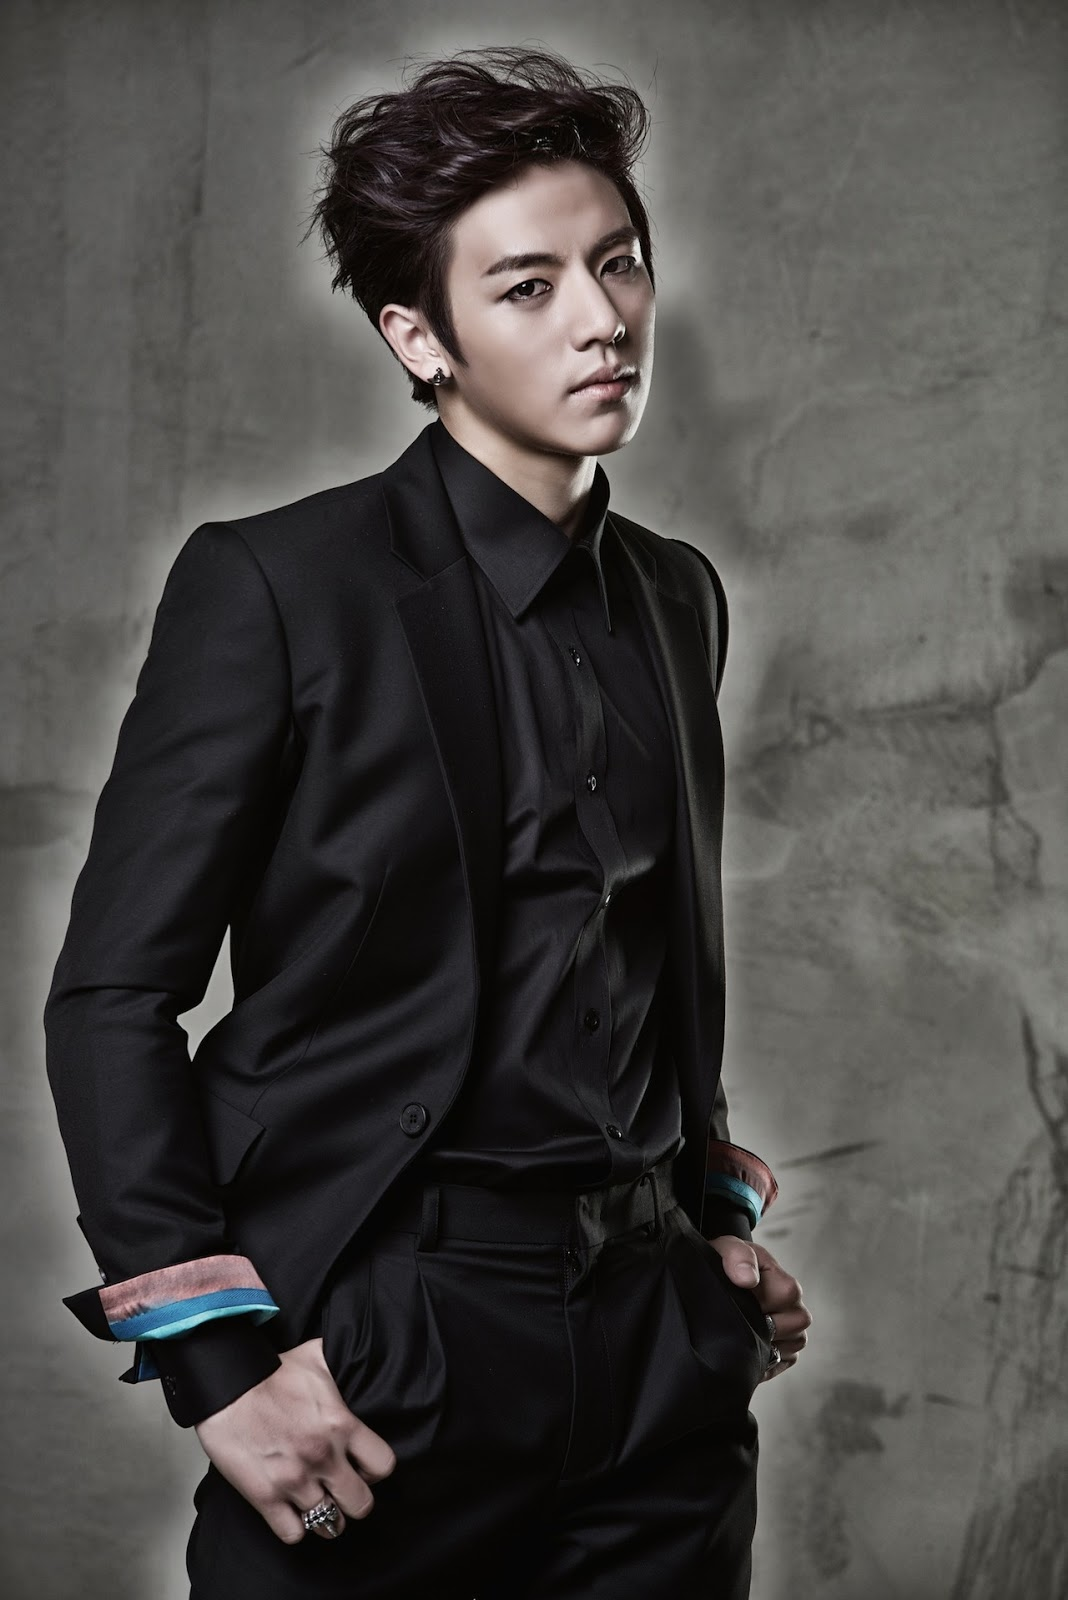 c clown rome - photo#14